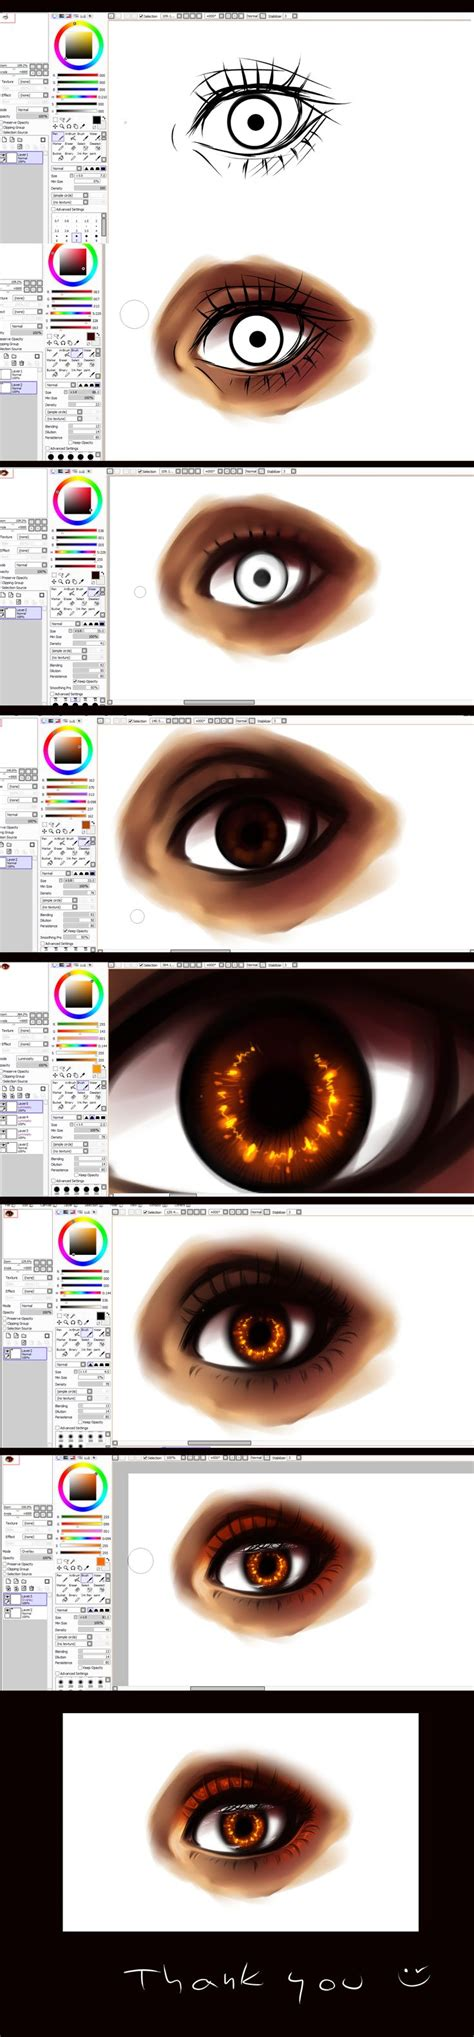 lineless tutorial paint tool sai 25 best ideas about painting tools on digital